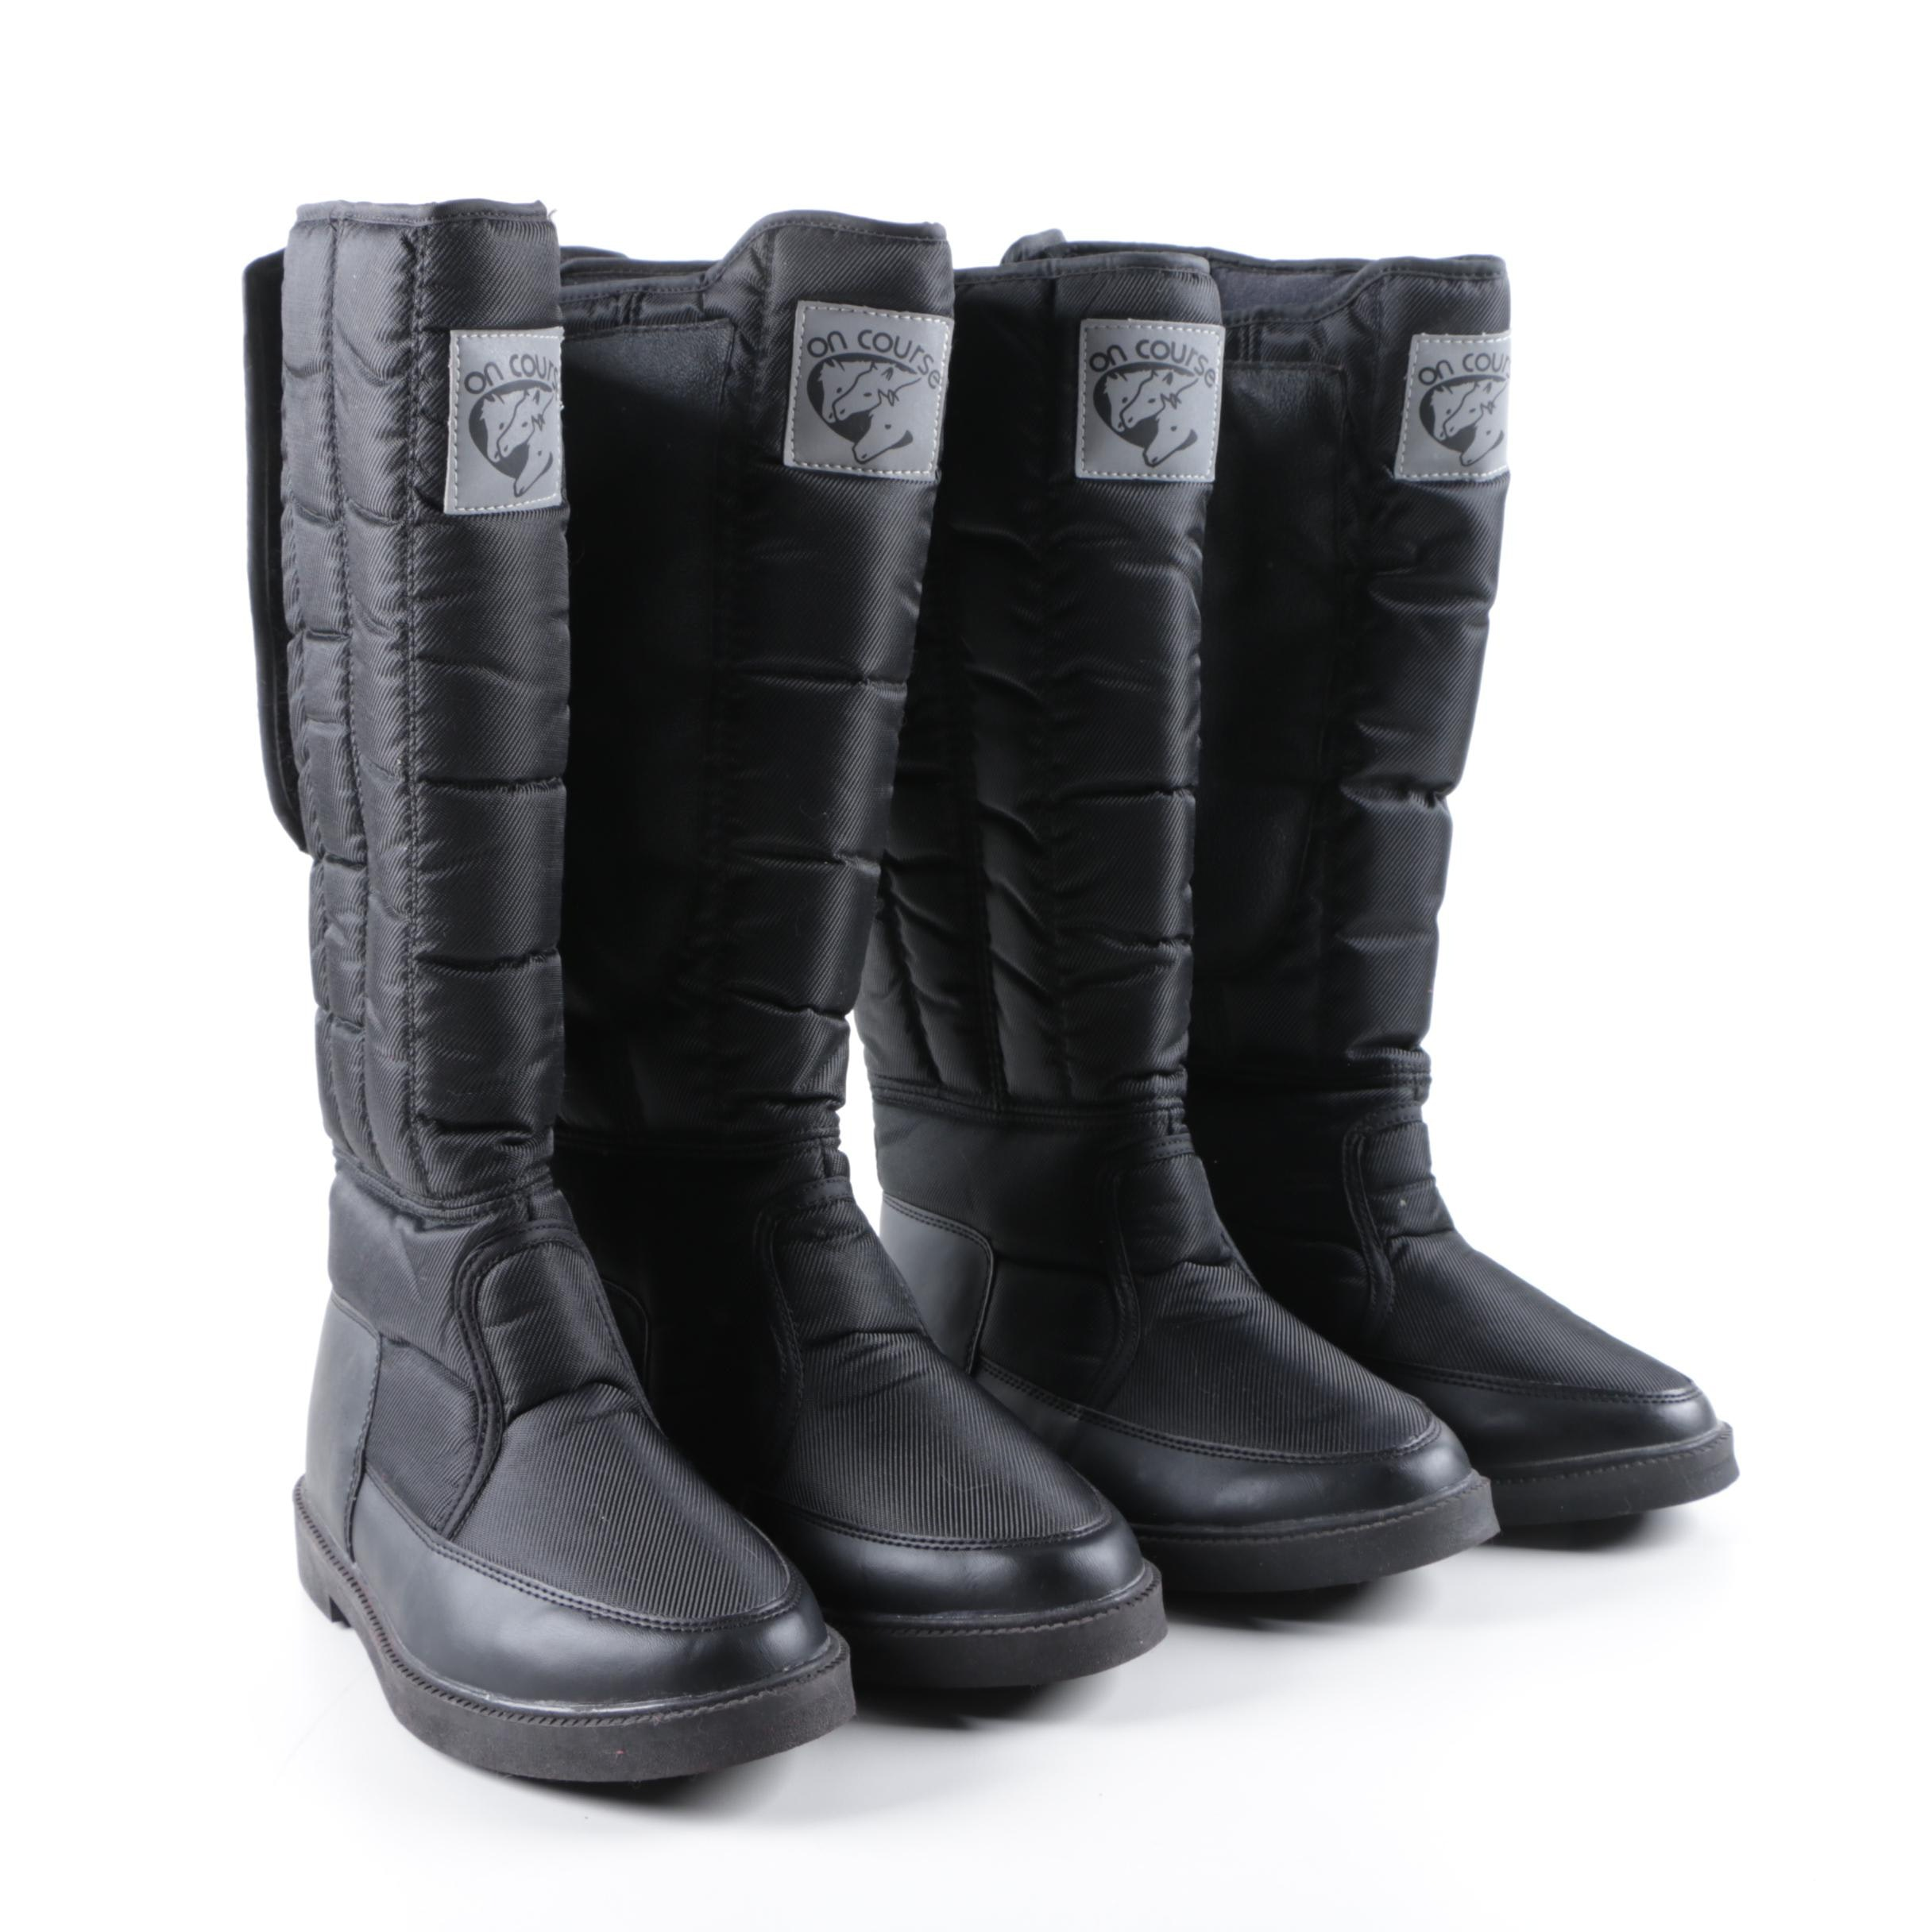 Winter Riding Boots by On Course